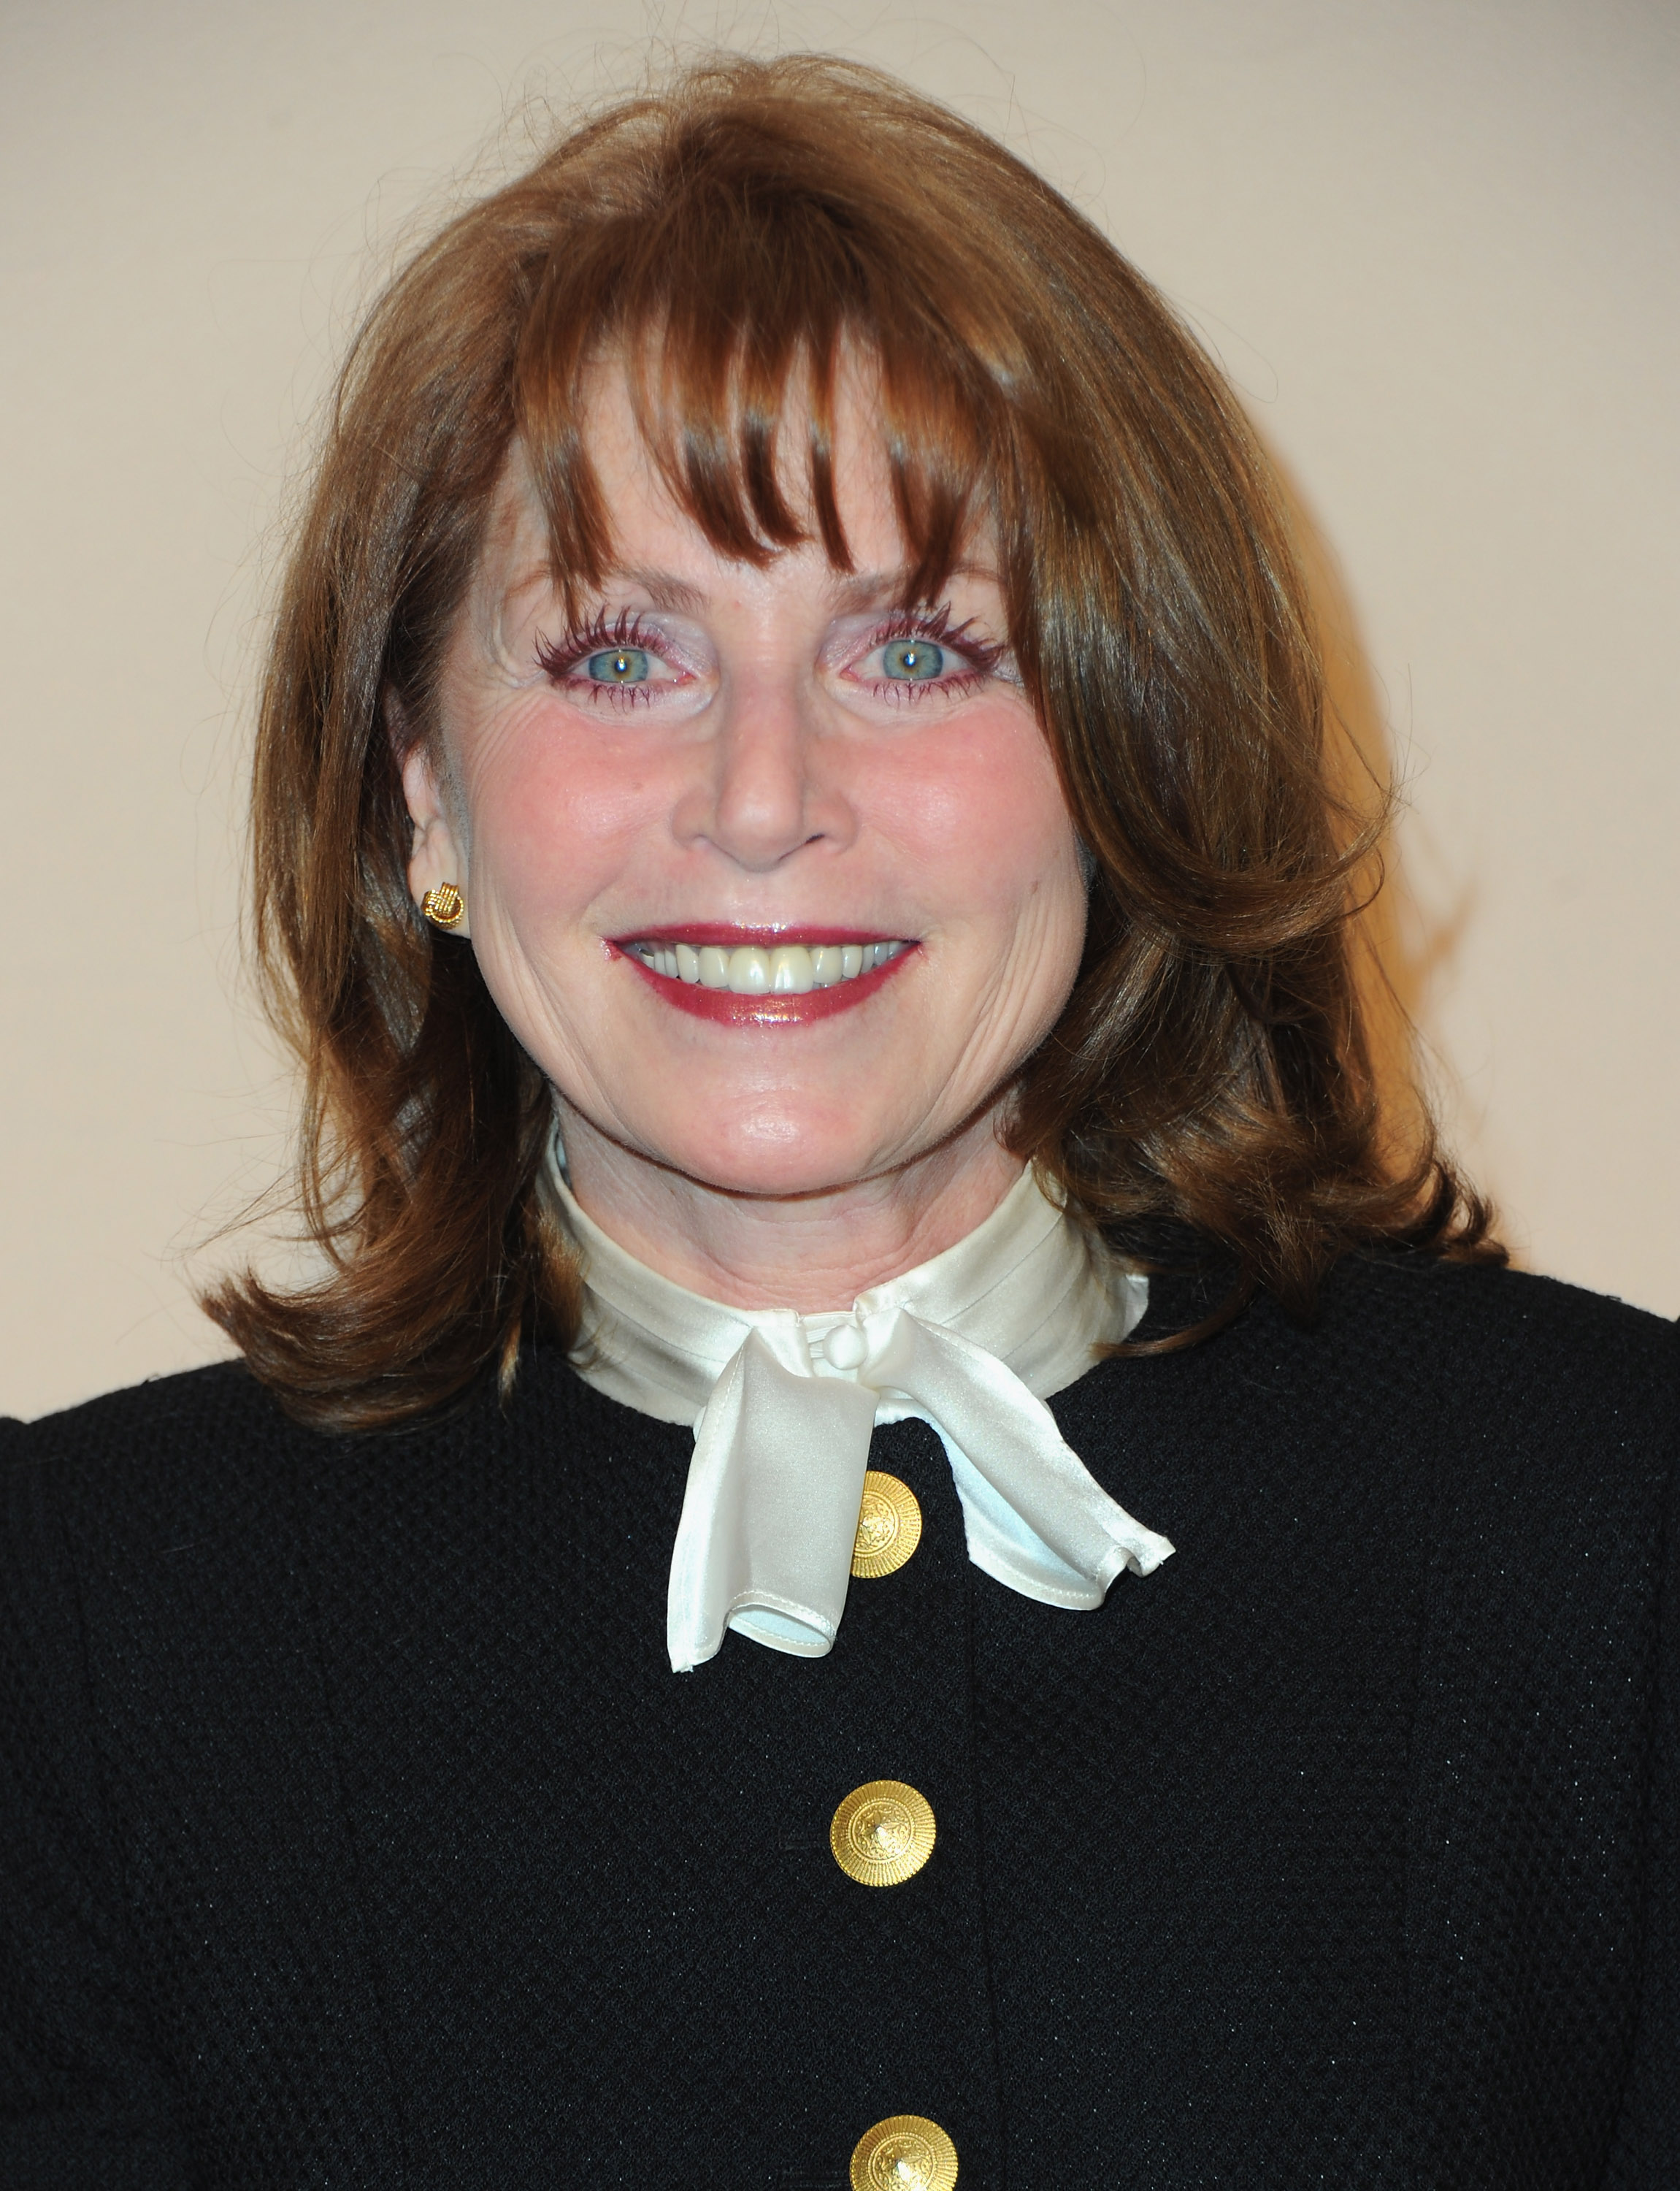 marcia strassman diedmarcia strassman mash, marcia strassman cause of death, marcia strassman movies, marcia strassman age, marcia strassman husband, marcia strassman height, marcia strassman 2016, marcia strassman died, marcia strassman funeral, marcia strassman ironside, marcia strassman rockford files, marcia strassman how did she die, marcia strassman imdb, marcia strassman grave, marcia strassman images, marcia strassman daughter, marcia strassman honey i shrunk, marcia strassman welcome back kotter, marcia strassman movies and tv shows, marcia strassman cancer